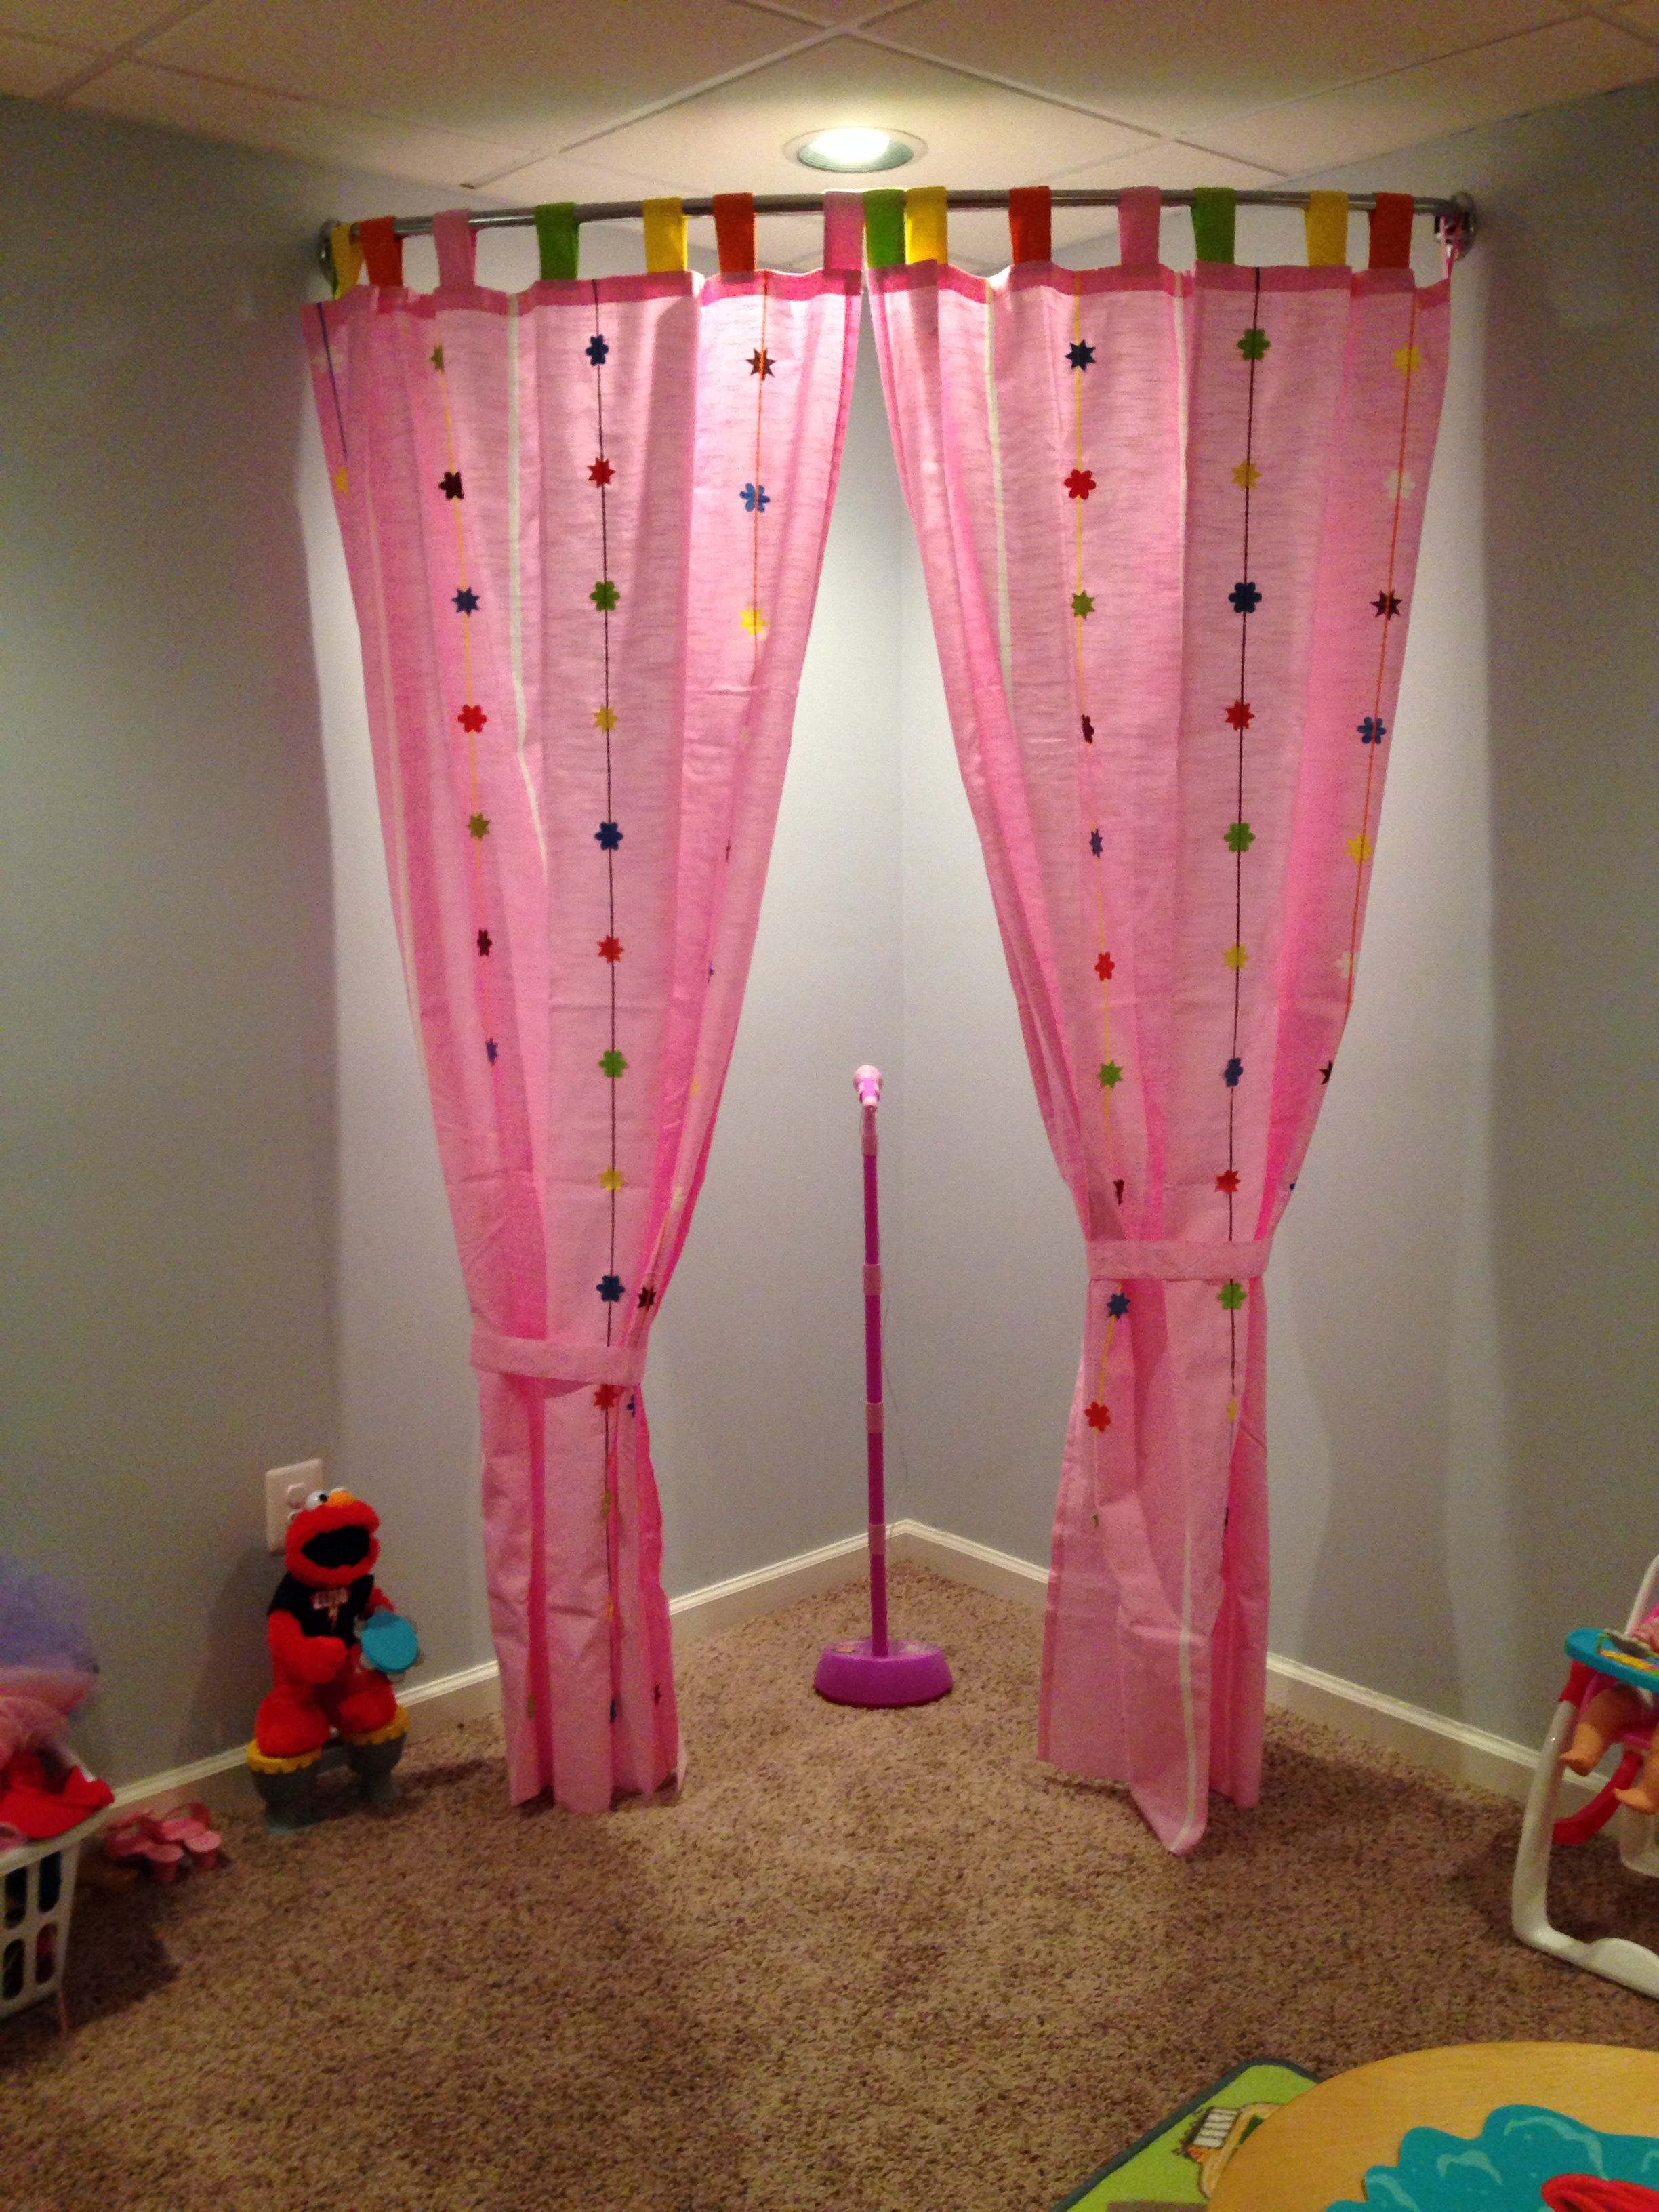 Here S A Playroom Stage Idea I Used A Curved Shower Curtain Rod